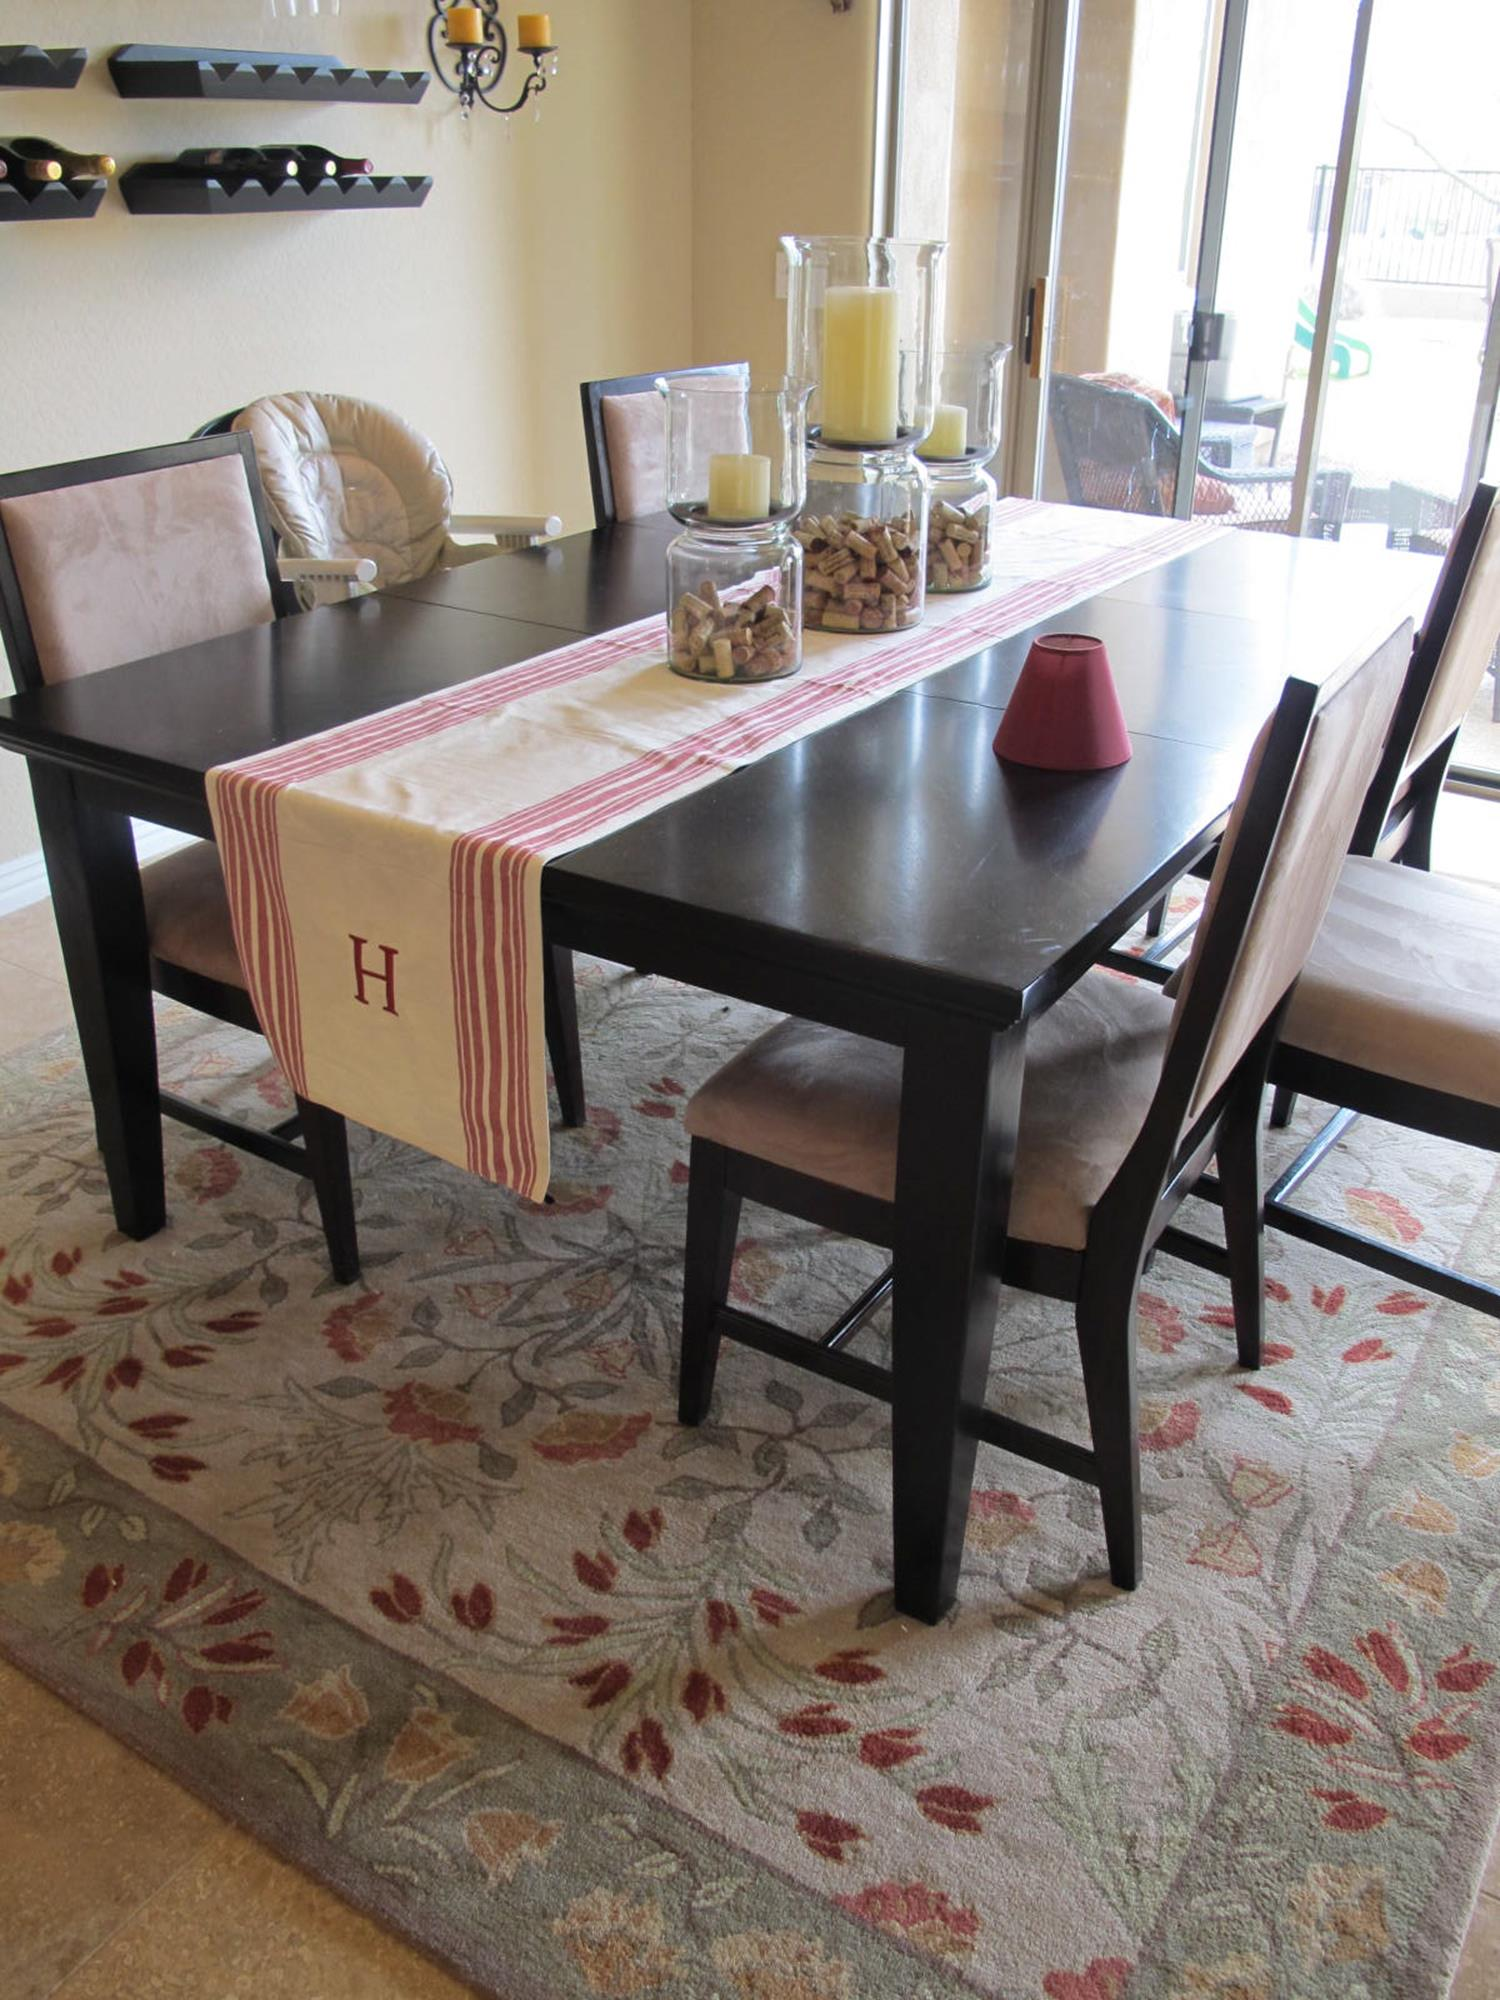 Best Cheap Rugs For Under Kitchen Table 1 Decorelated